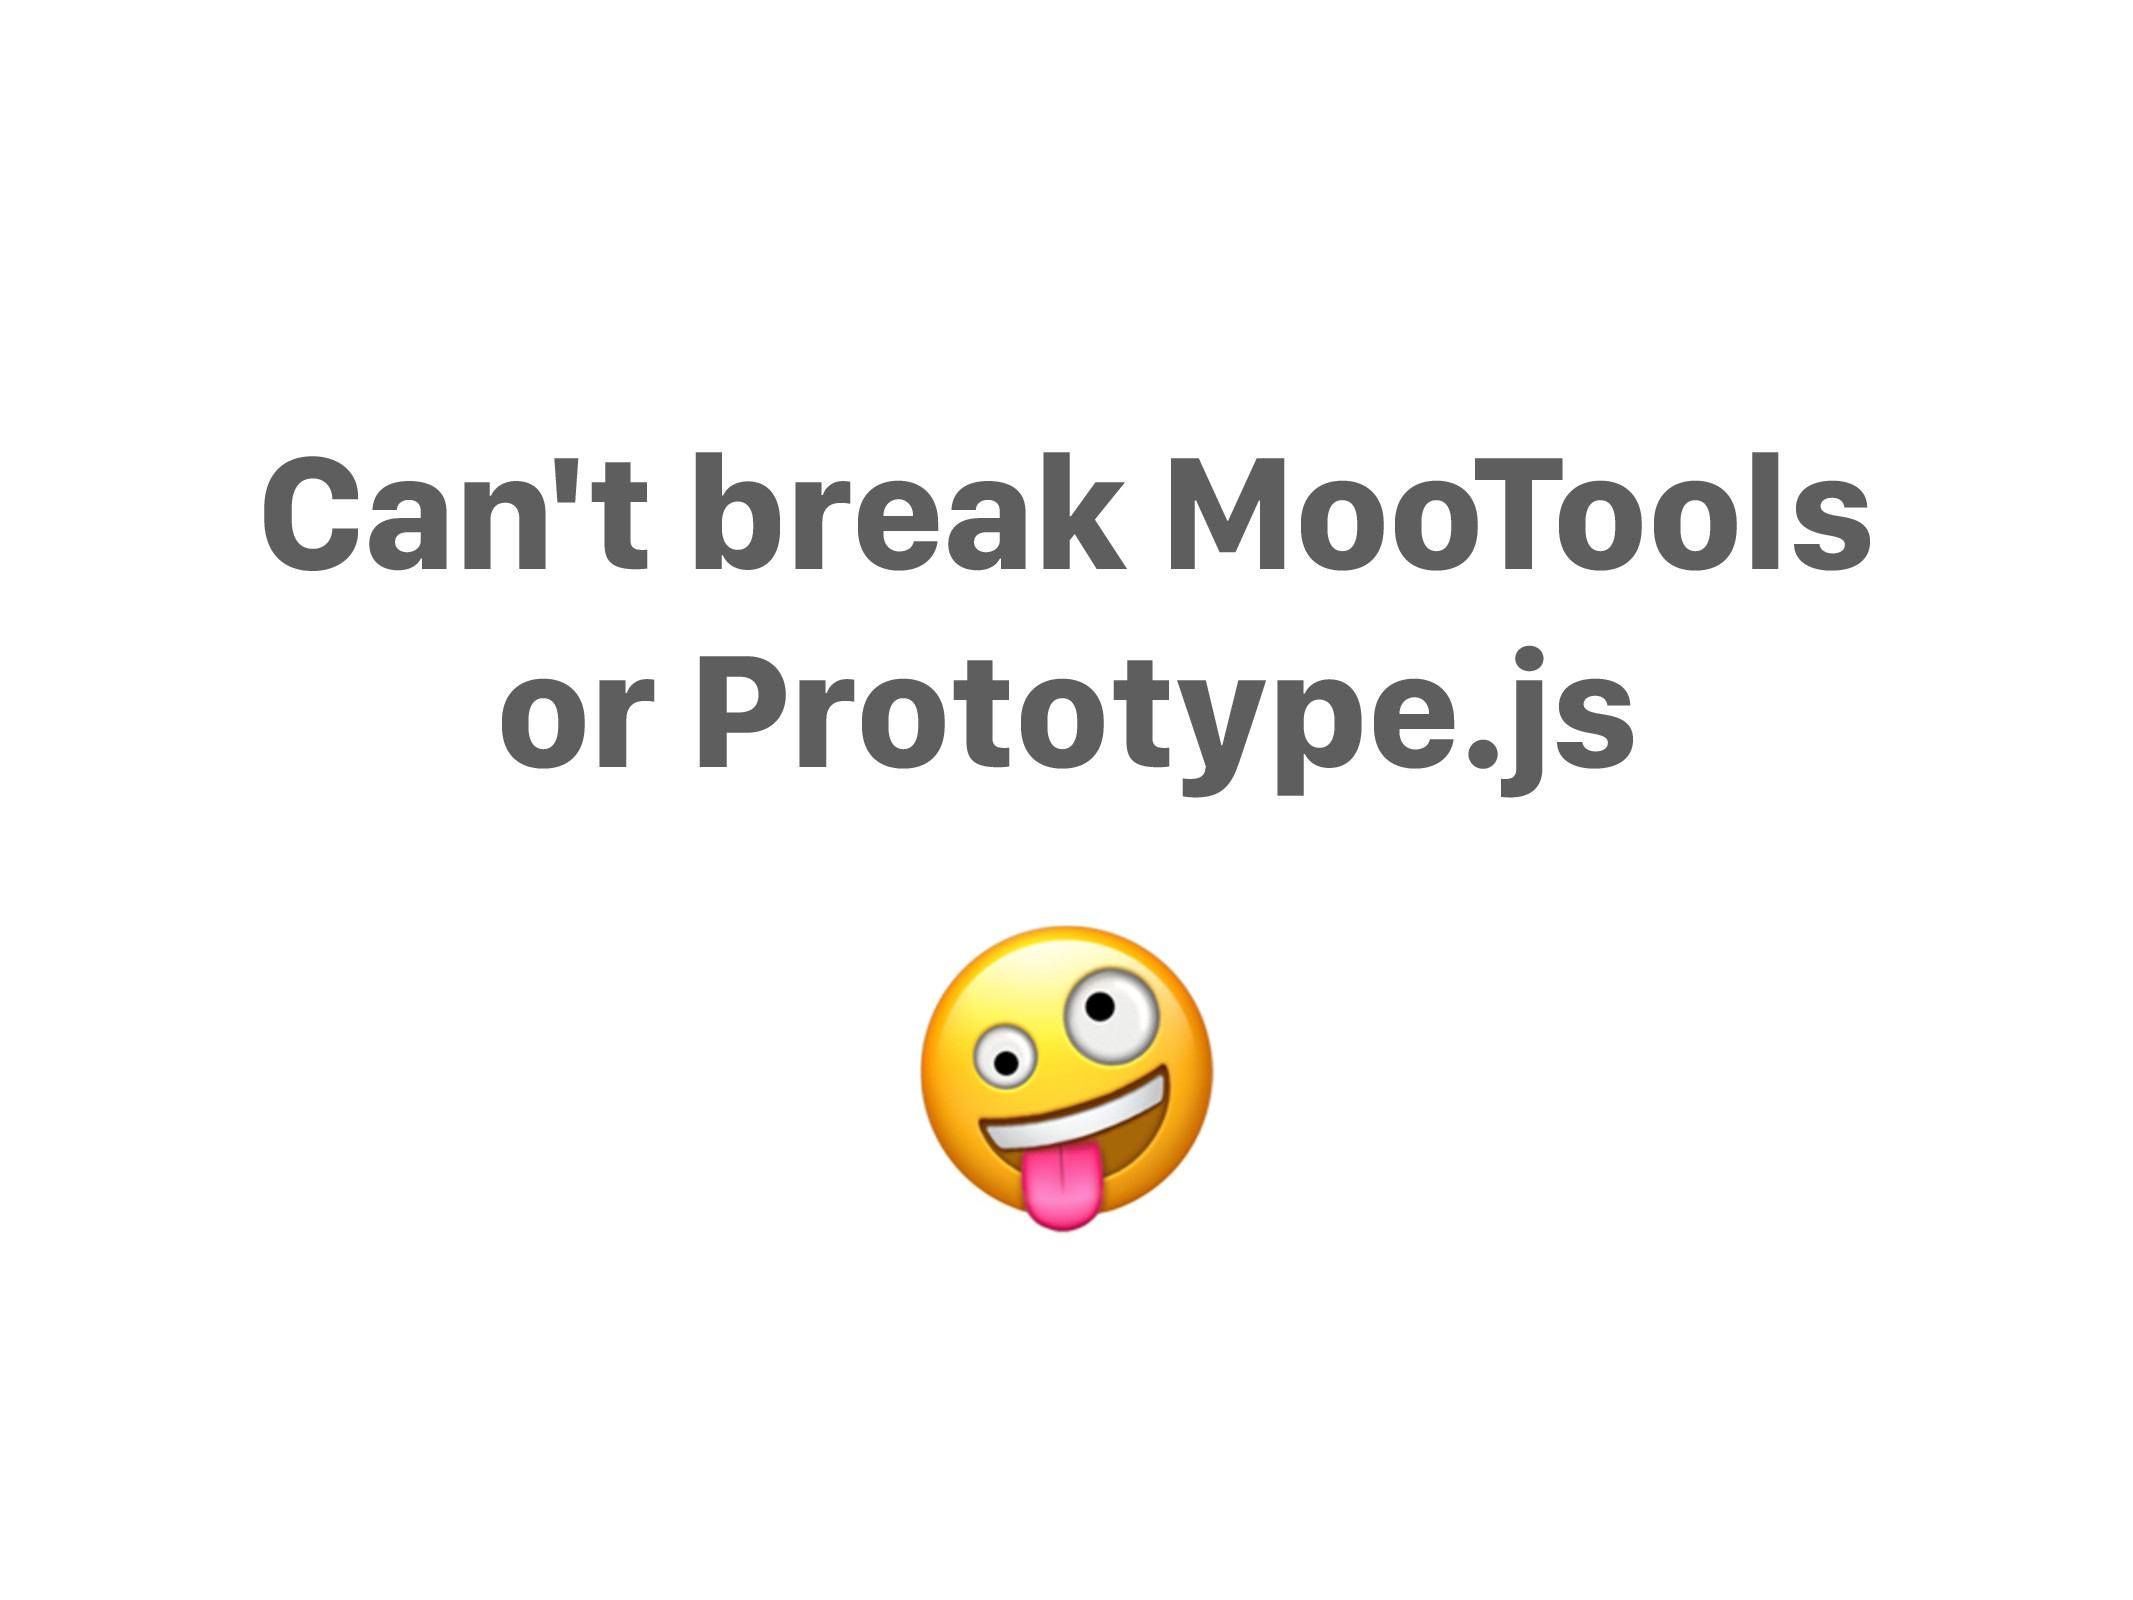 Can't break MooTools or Prototype.js